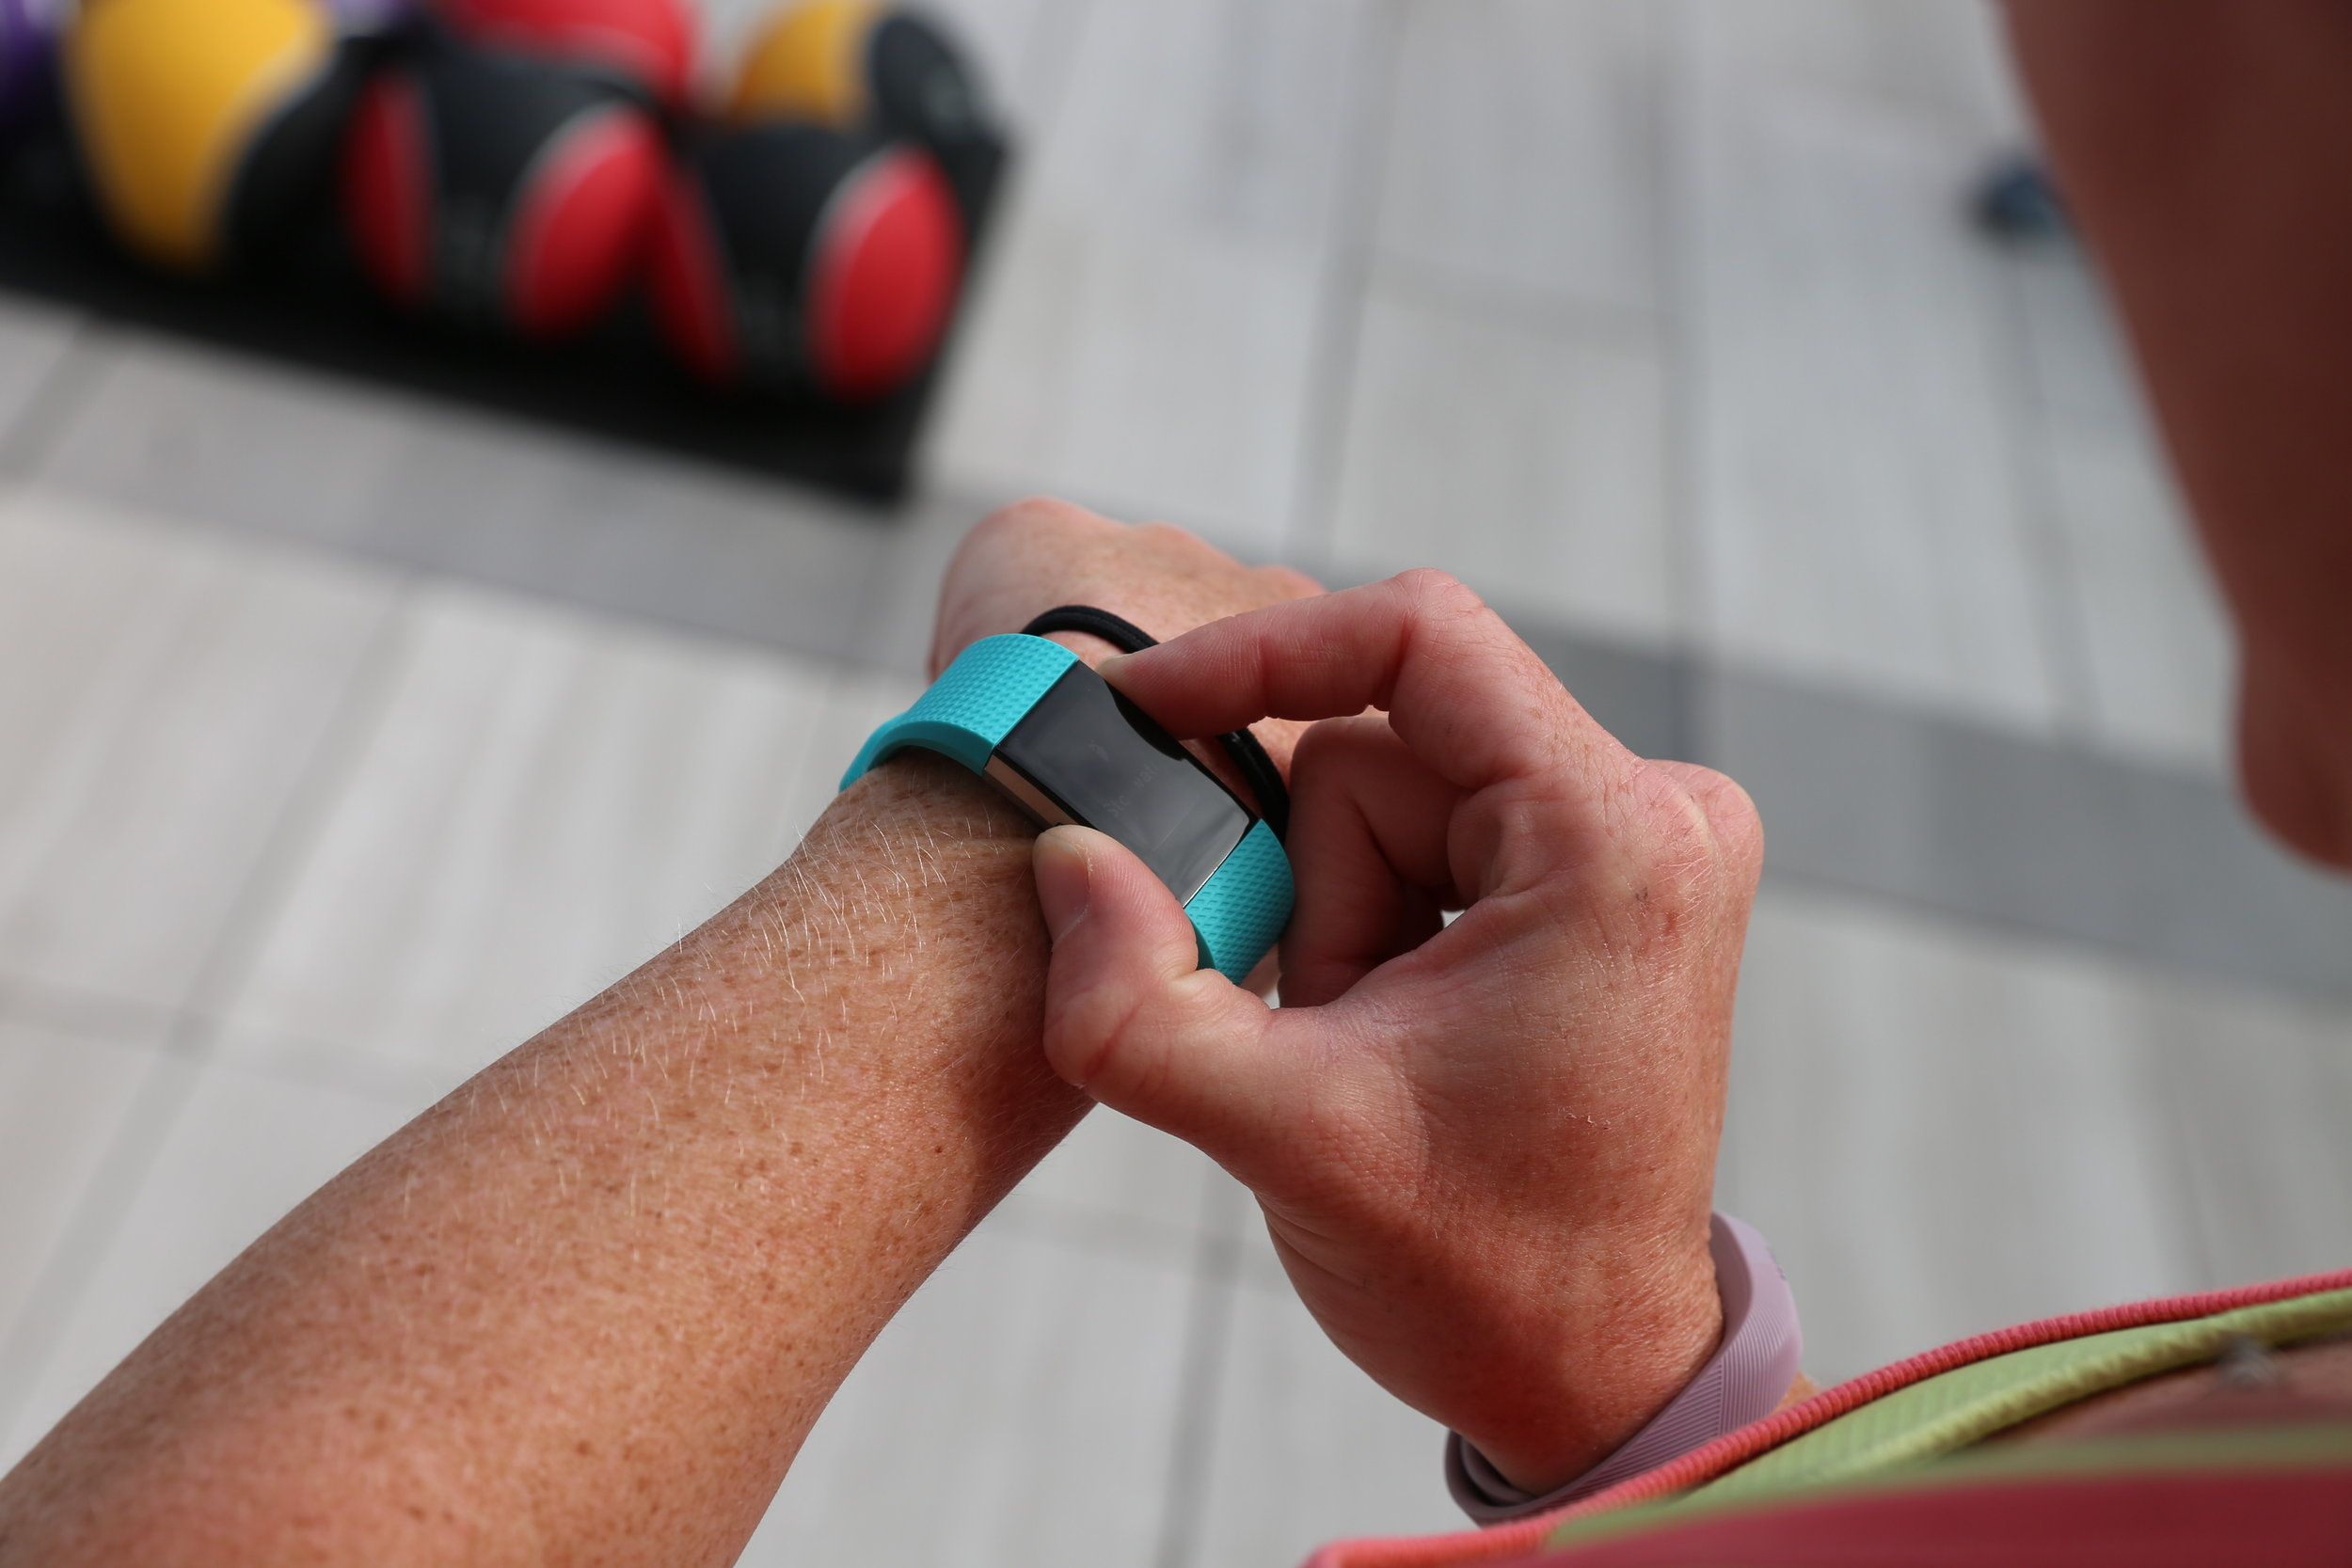 The Fitbit Charge 2 will be available for purchase in September 2016.